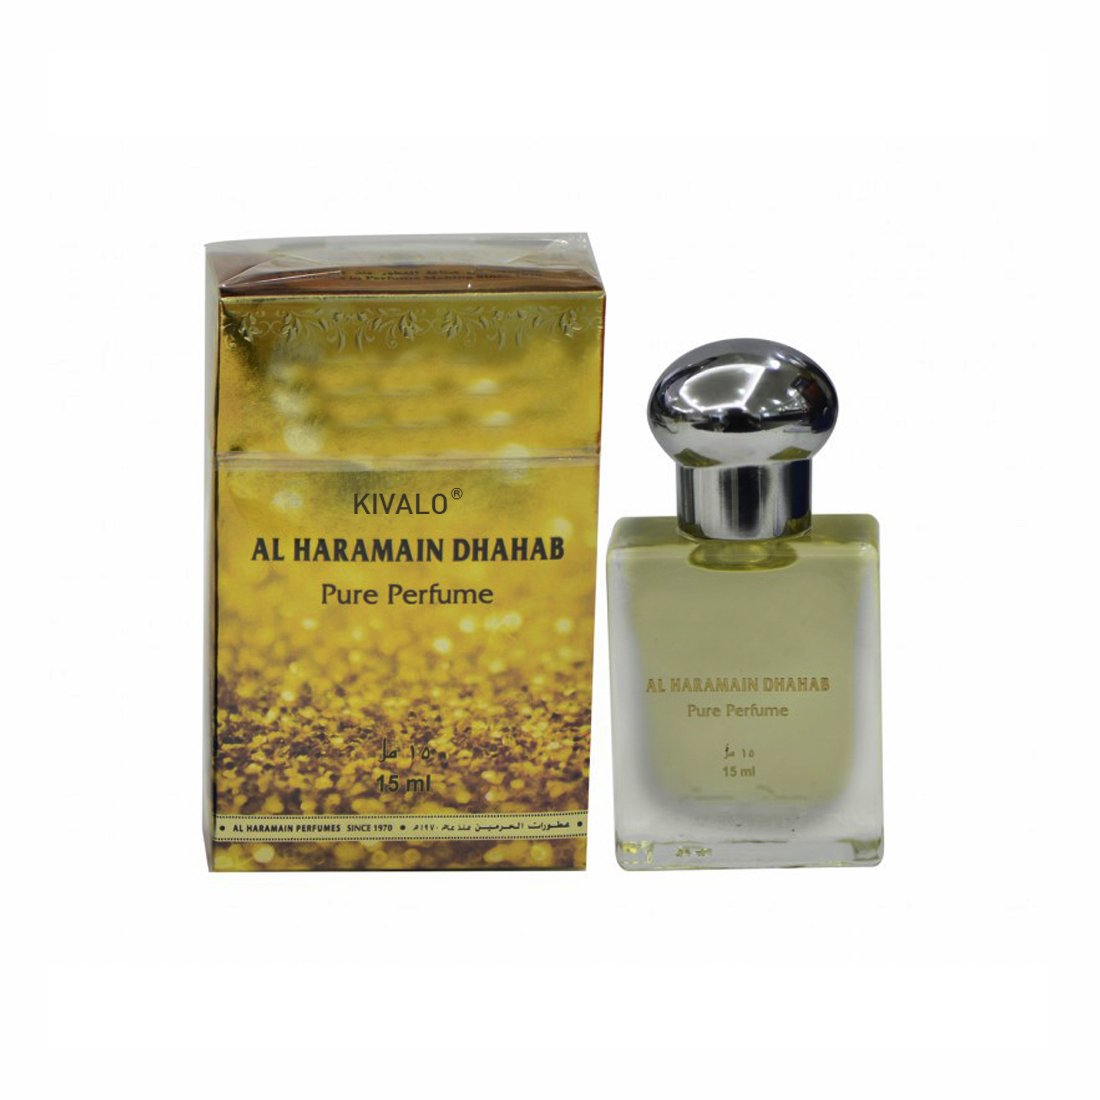 Al Haramain Dhahab & Forever Fragrance Pure Original Roll on Perfume Oil Pack of 2 (Attar) - 2 x 15 ml